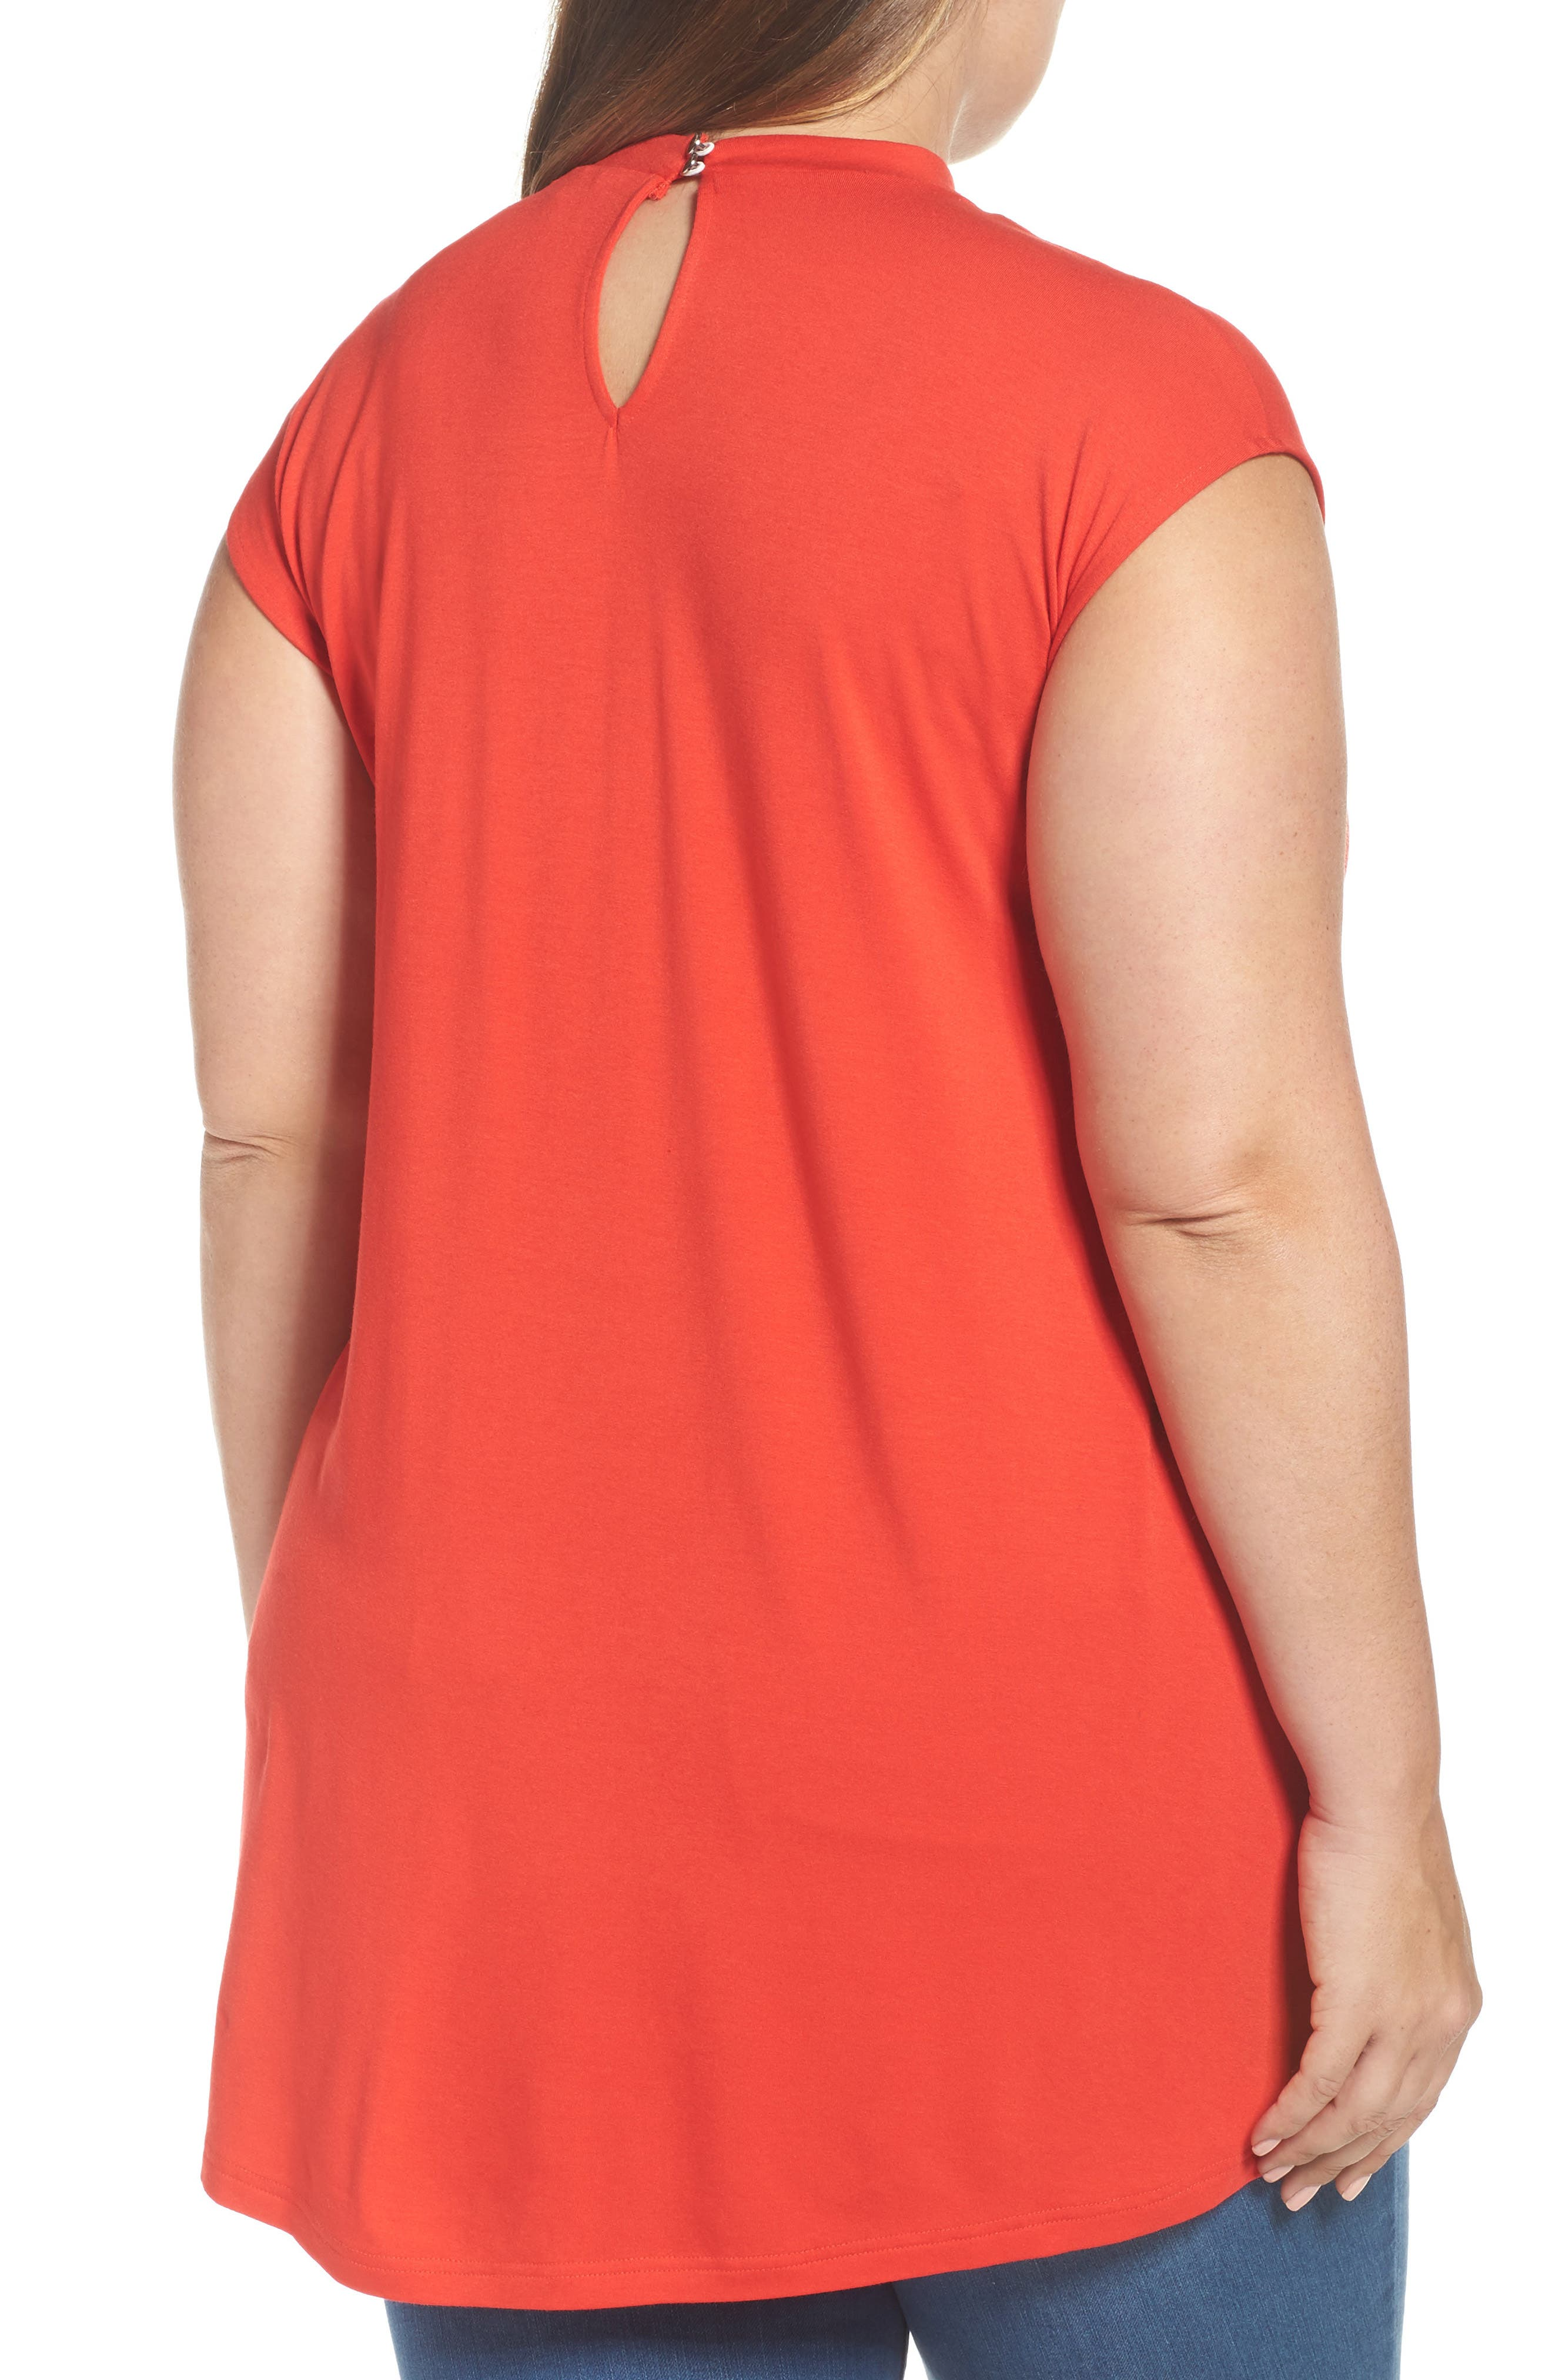 Alternate Image 2  - Vince Camuto Mock Choker High/Low Blouse